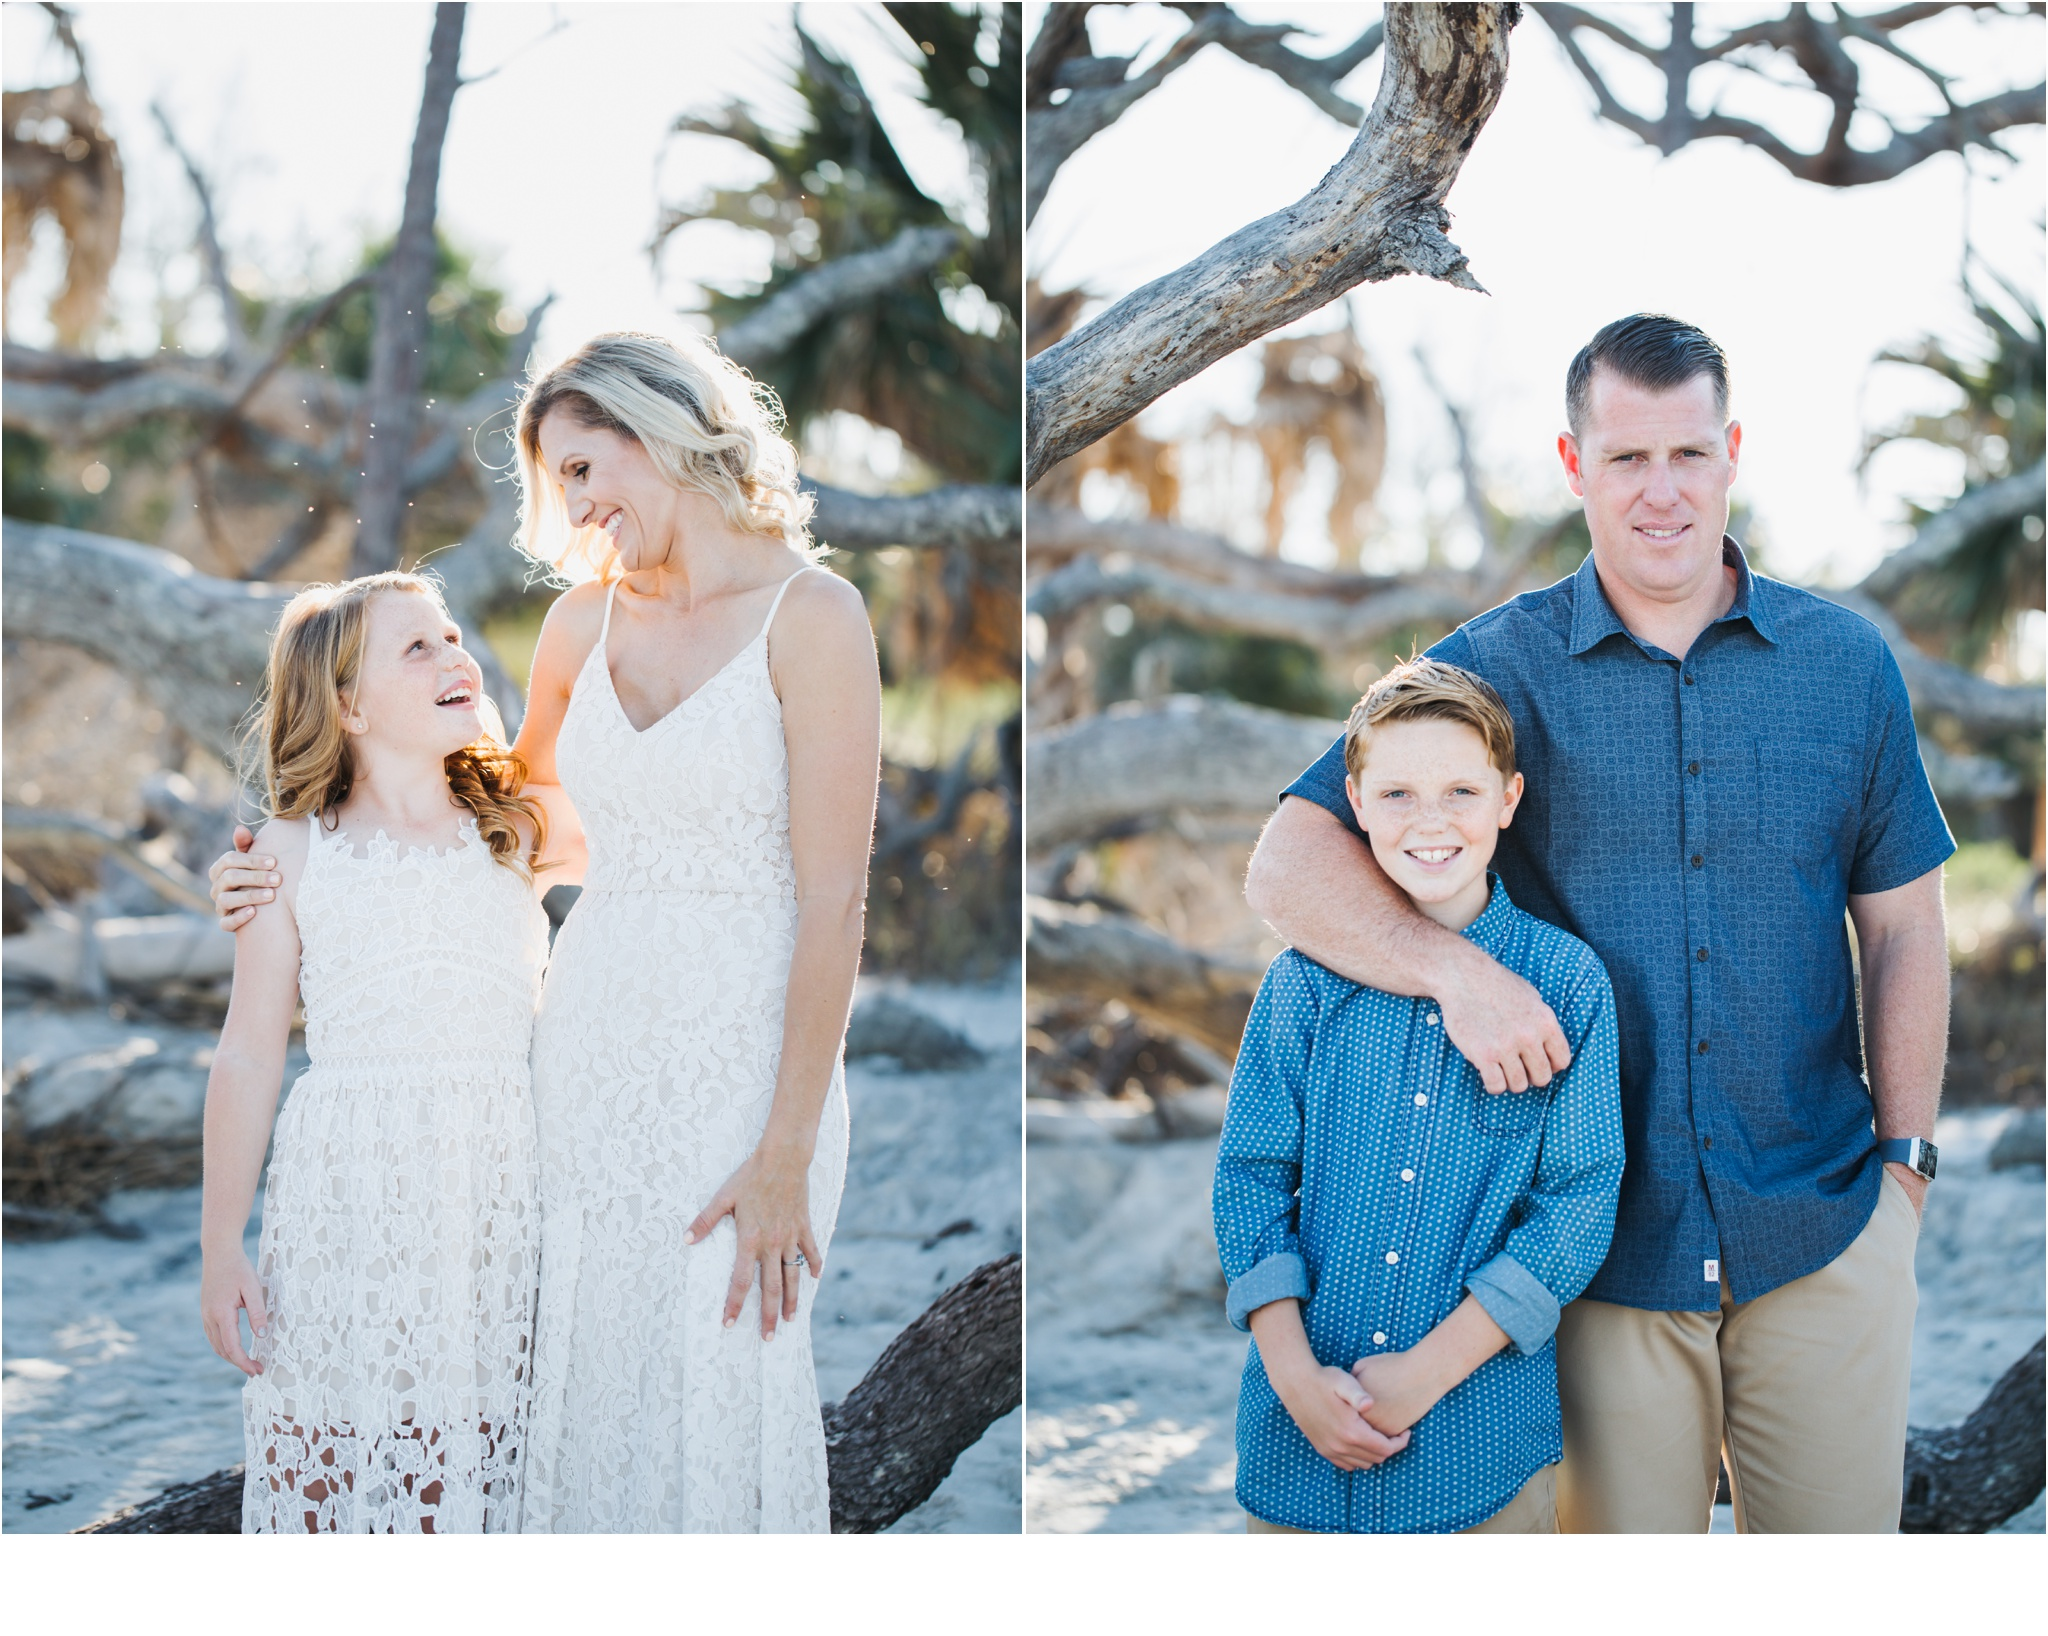 Rainey_Gregg_Photography_St._Simons_Island_Georgia_California_Wedding_Portrait_Photography_1579.jpg